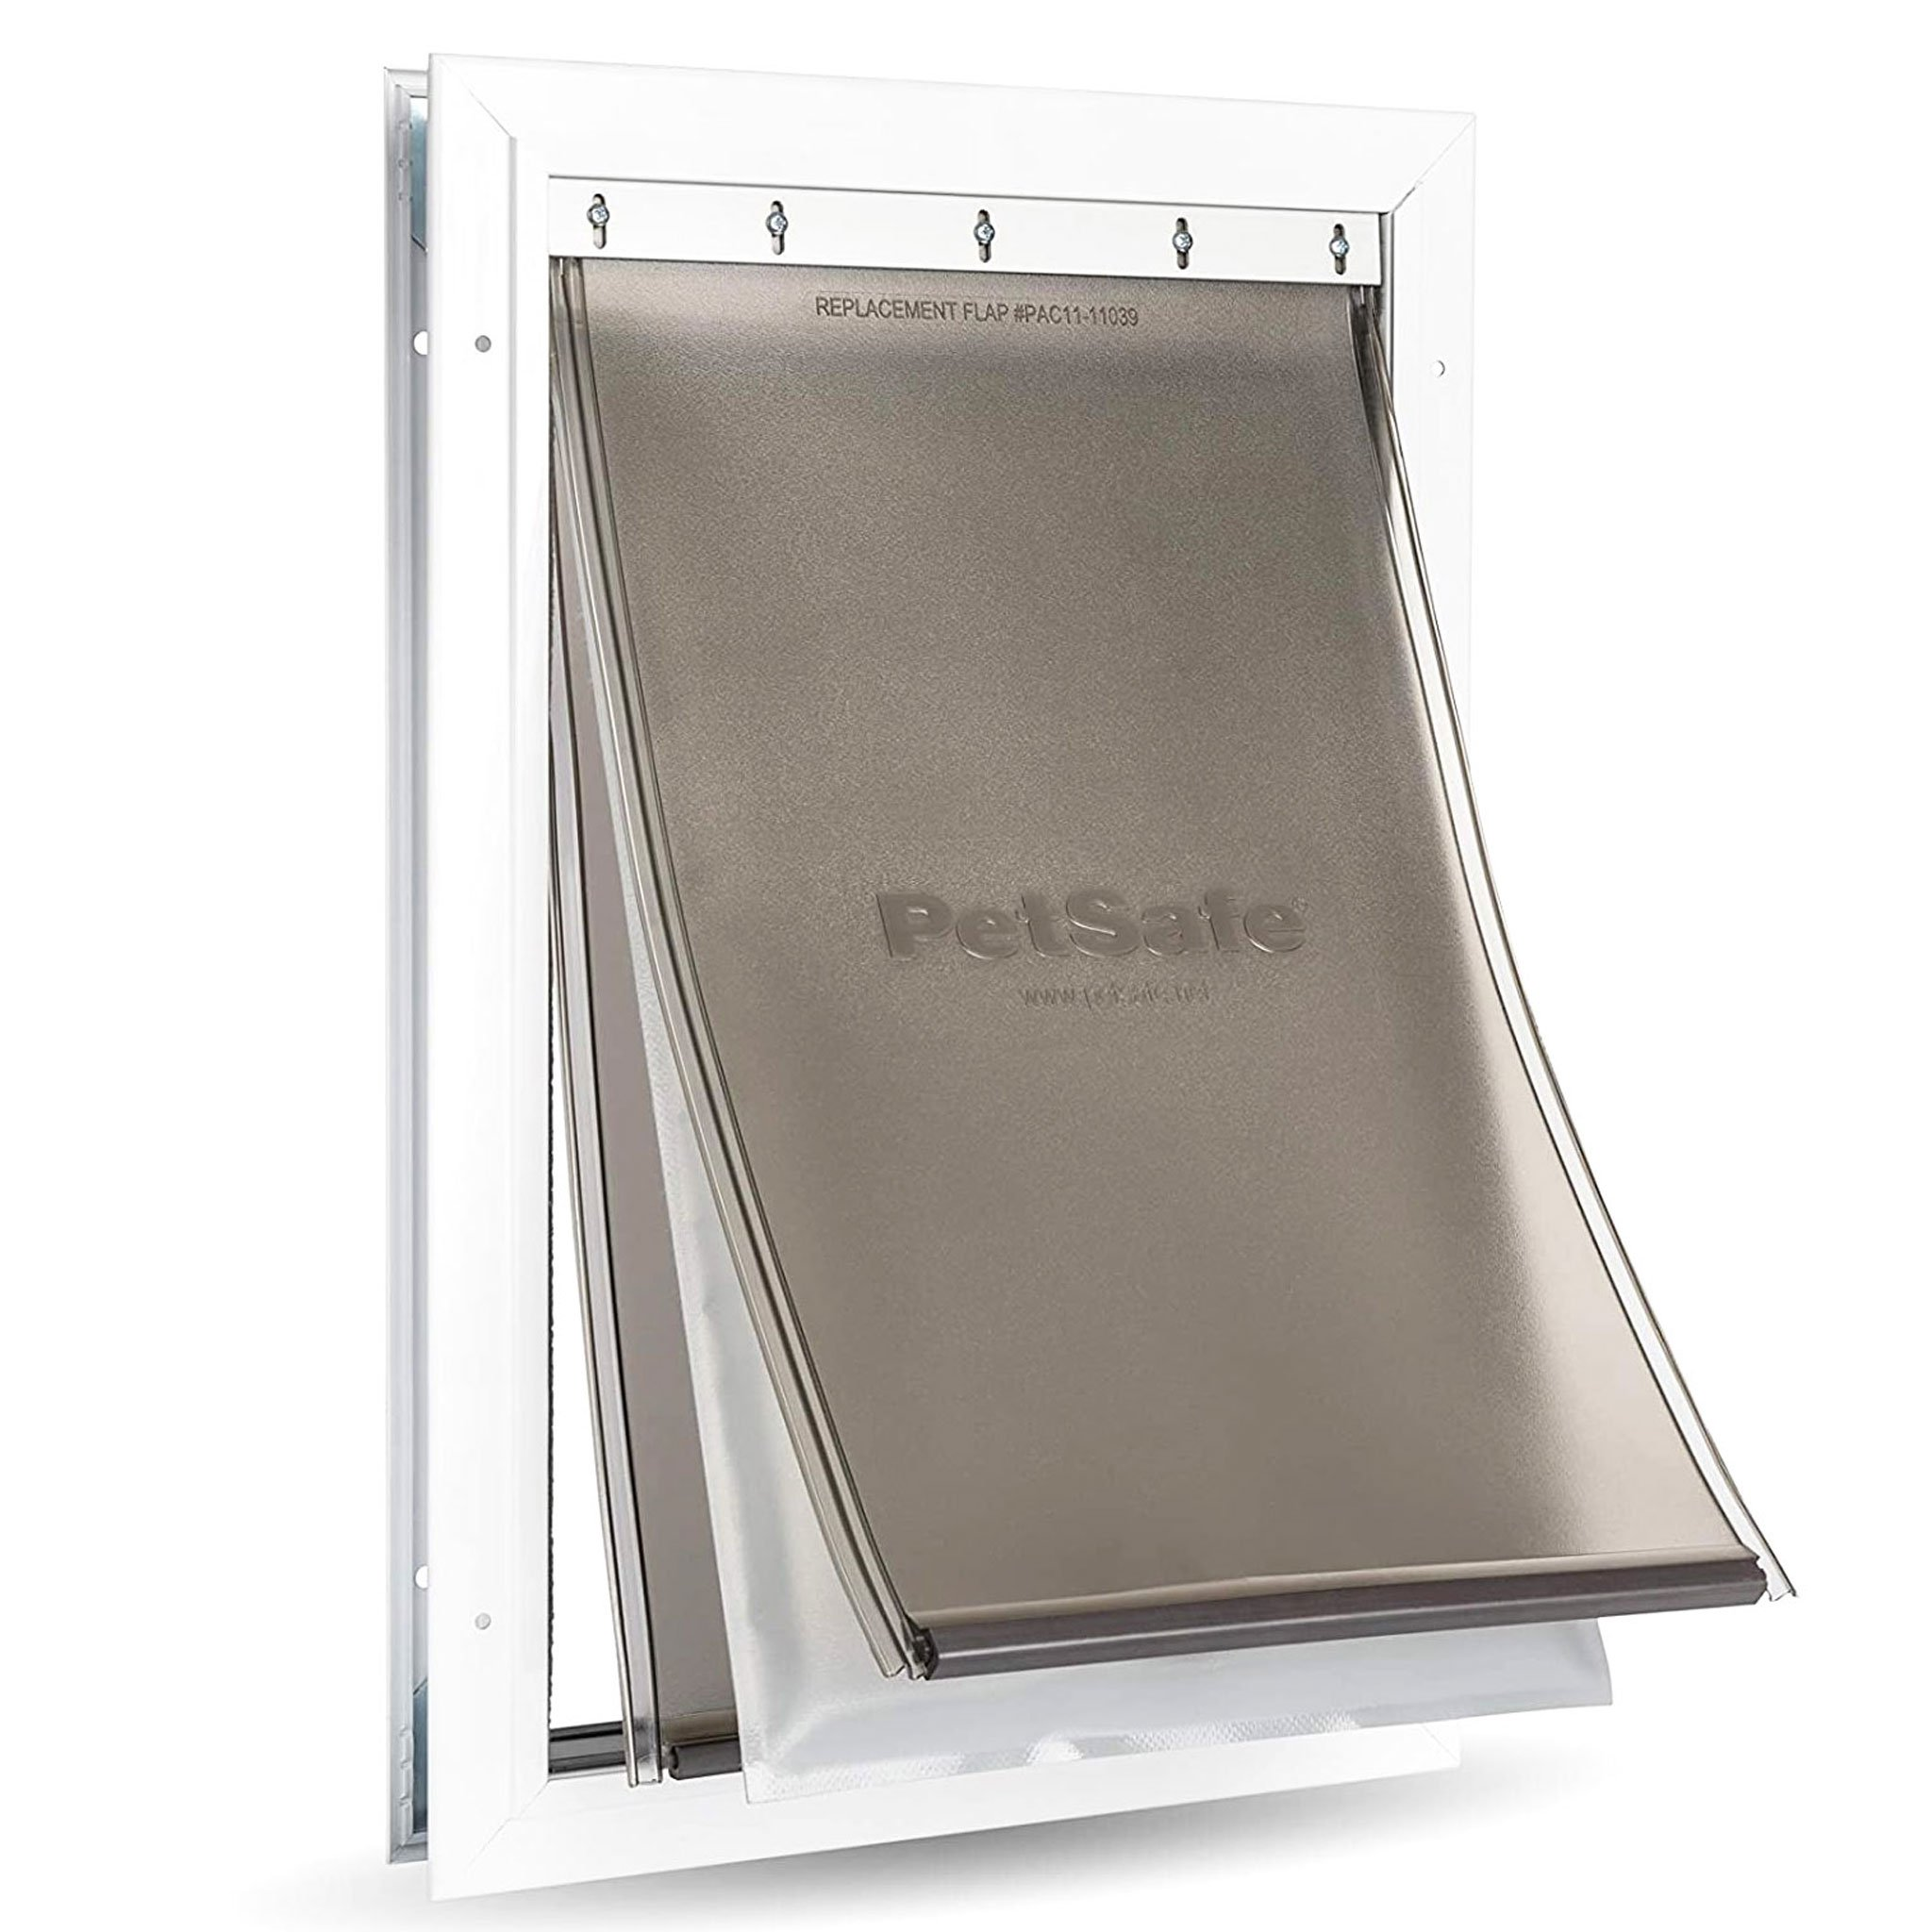 Triple flaps inside the frame with an insulated flap to reduce heat loss.